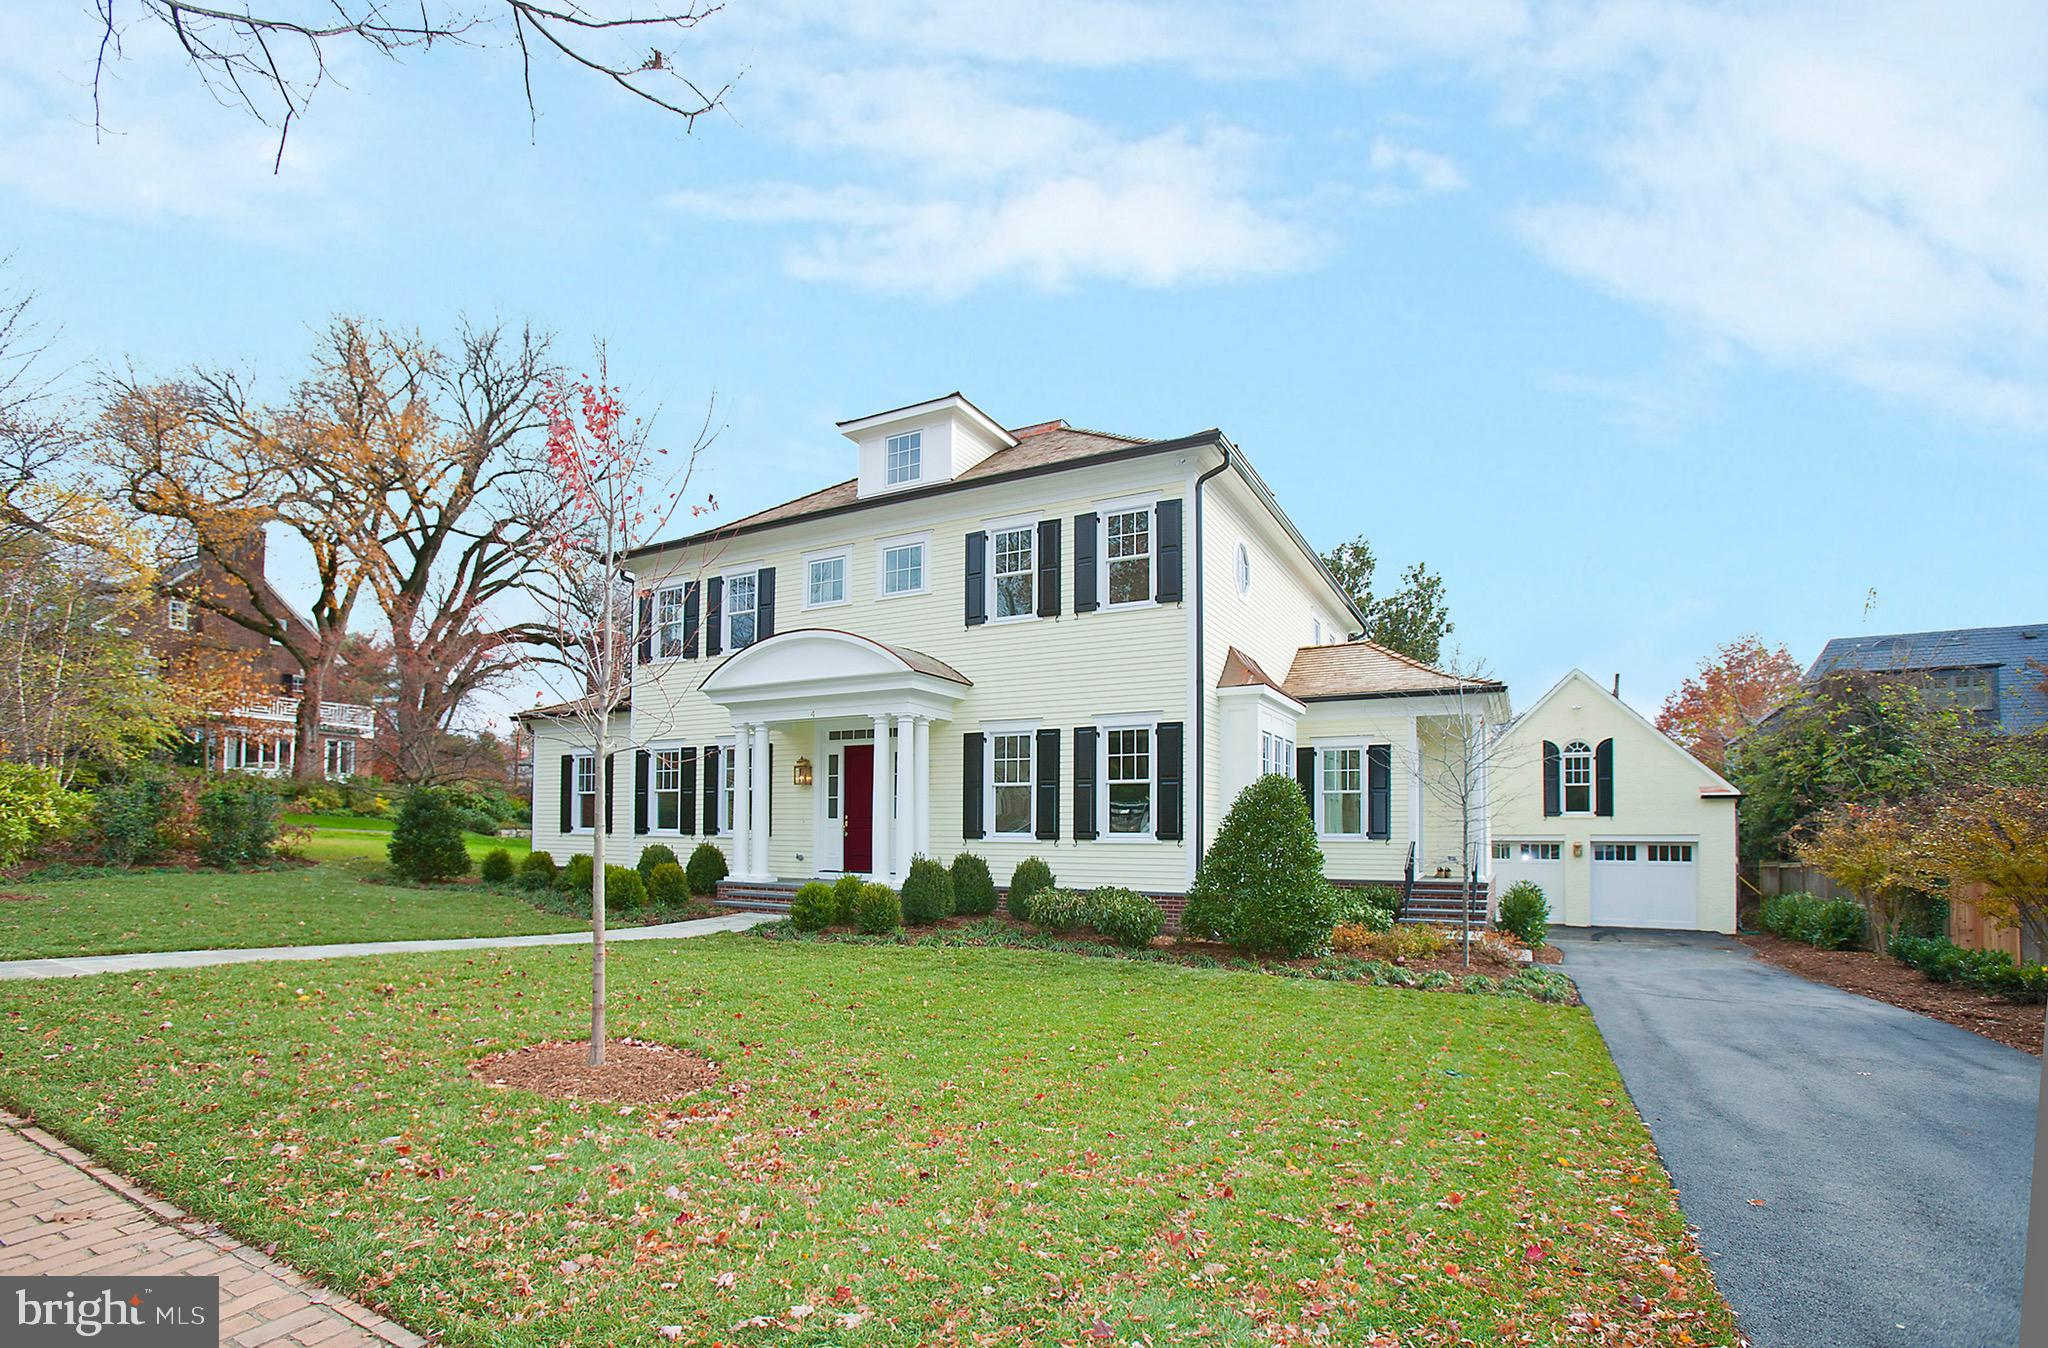 4 QUINCY STREET, CHEVY CHASE, MD 20815